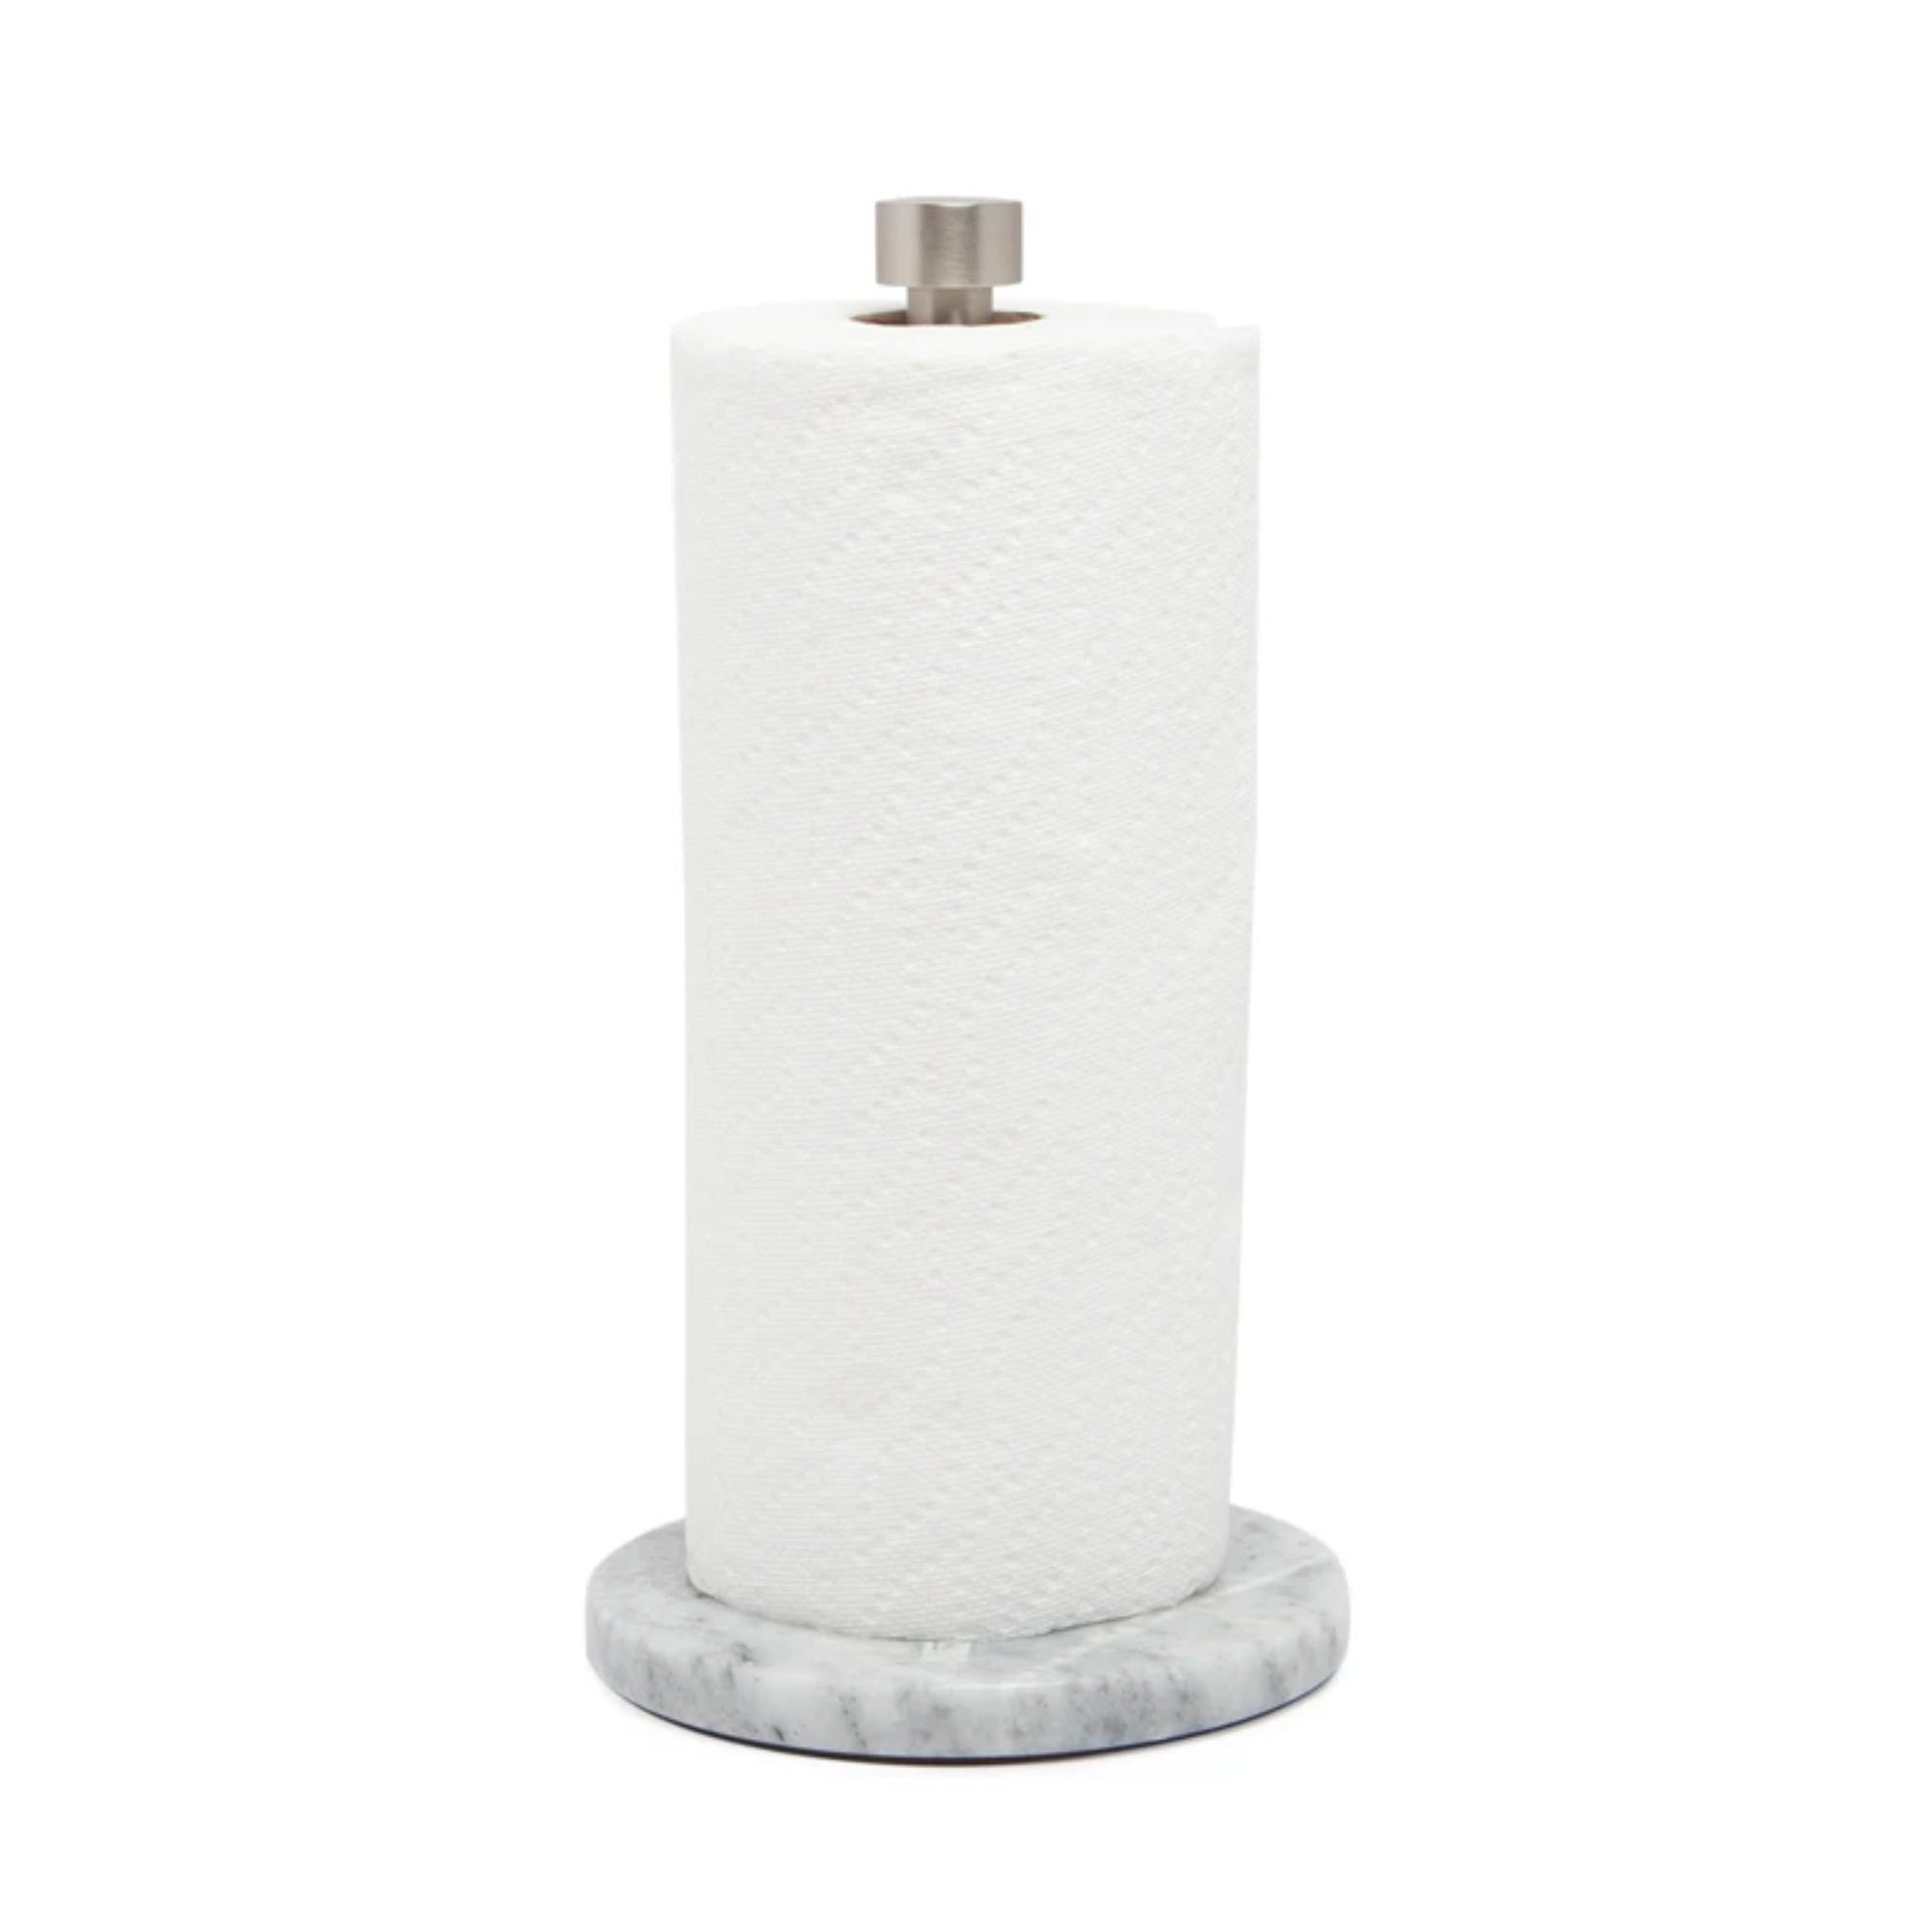 Umbra Marla paper towel holder